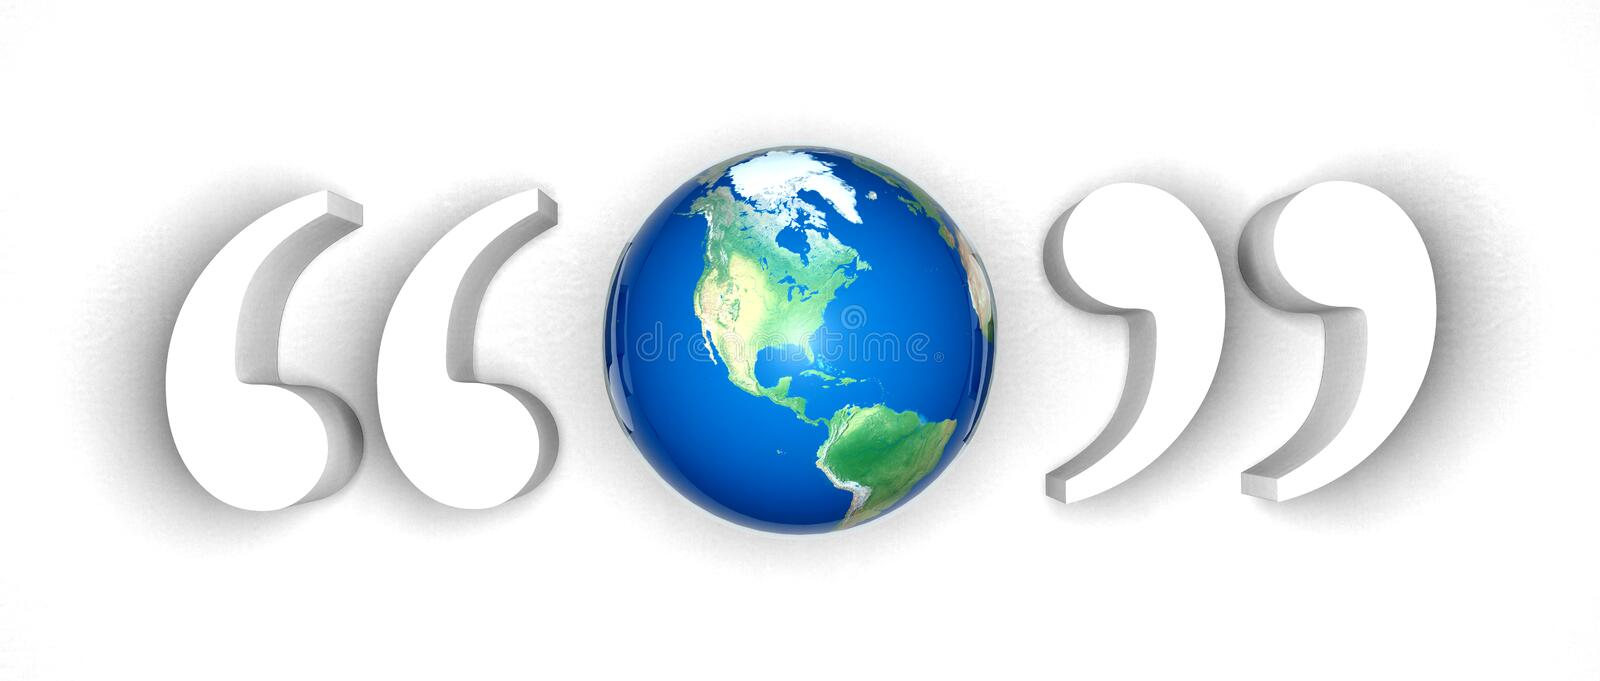 Earth in double quotes. Who speaks for earth concept the voice of humanity coming together to speak as one people peace stock illustration